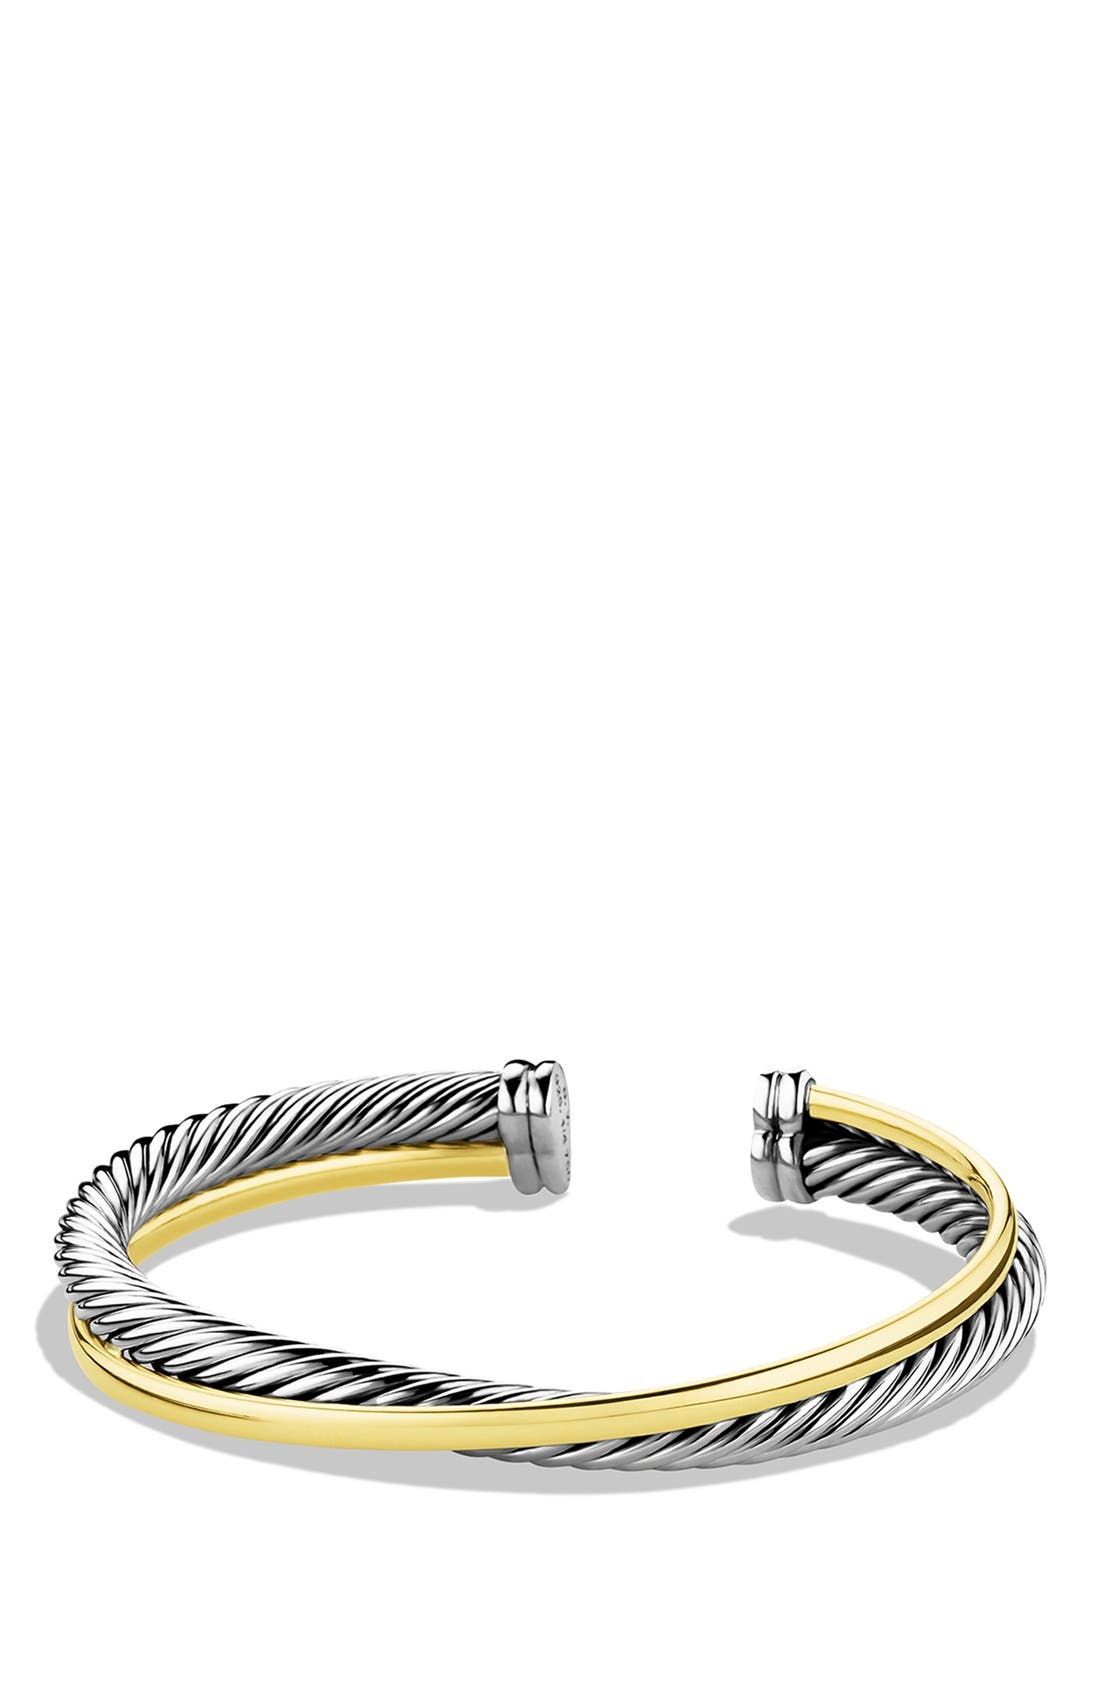 Alternate Image 1 Selected - David Yurman 'Crossover' Cuff with Gold